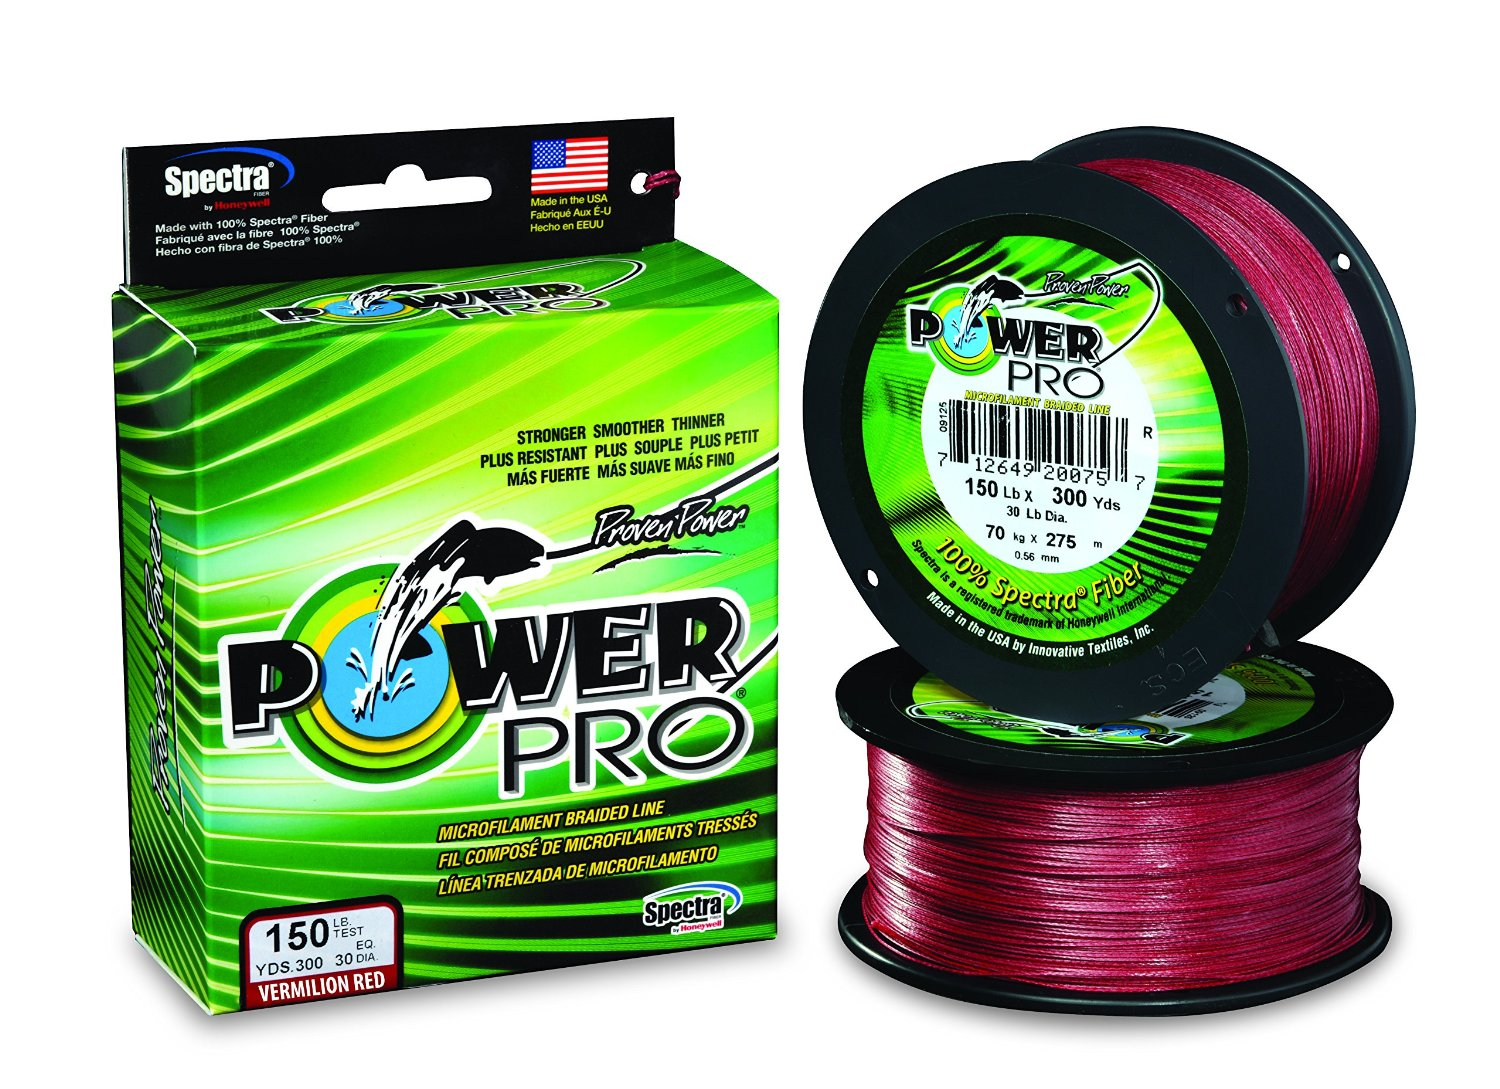 Power pro braided fishing line fishingnew for Power pro fishing line